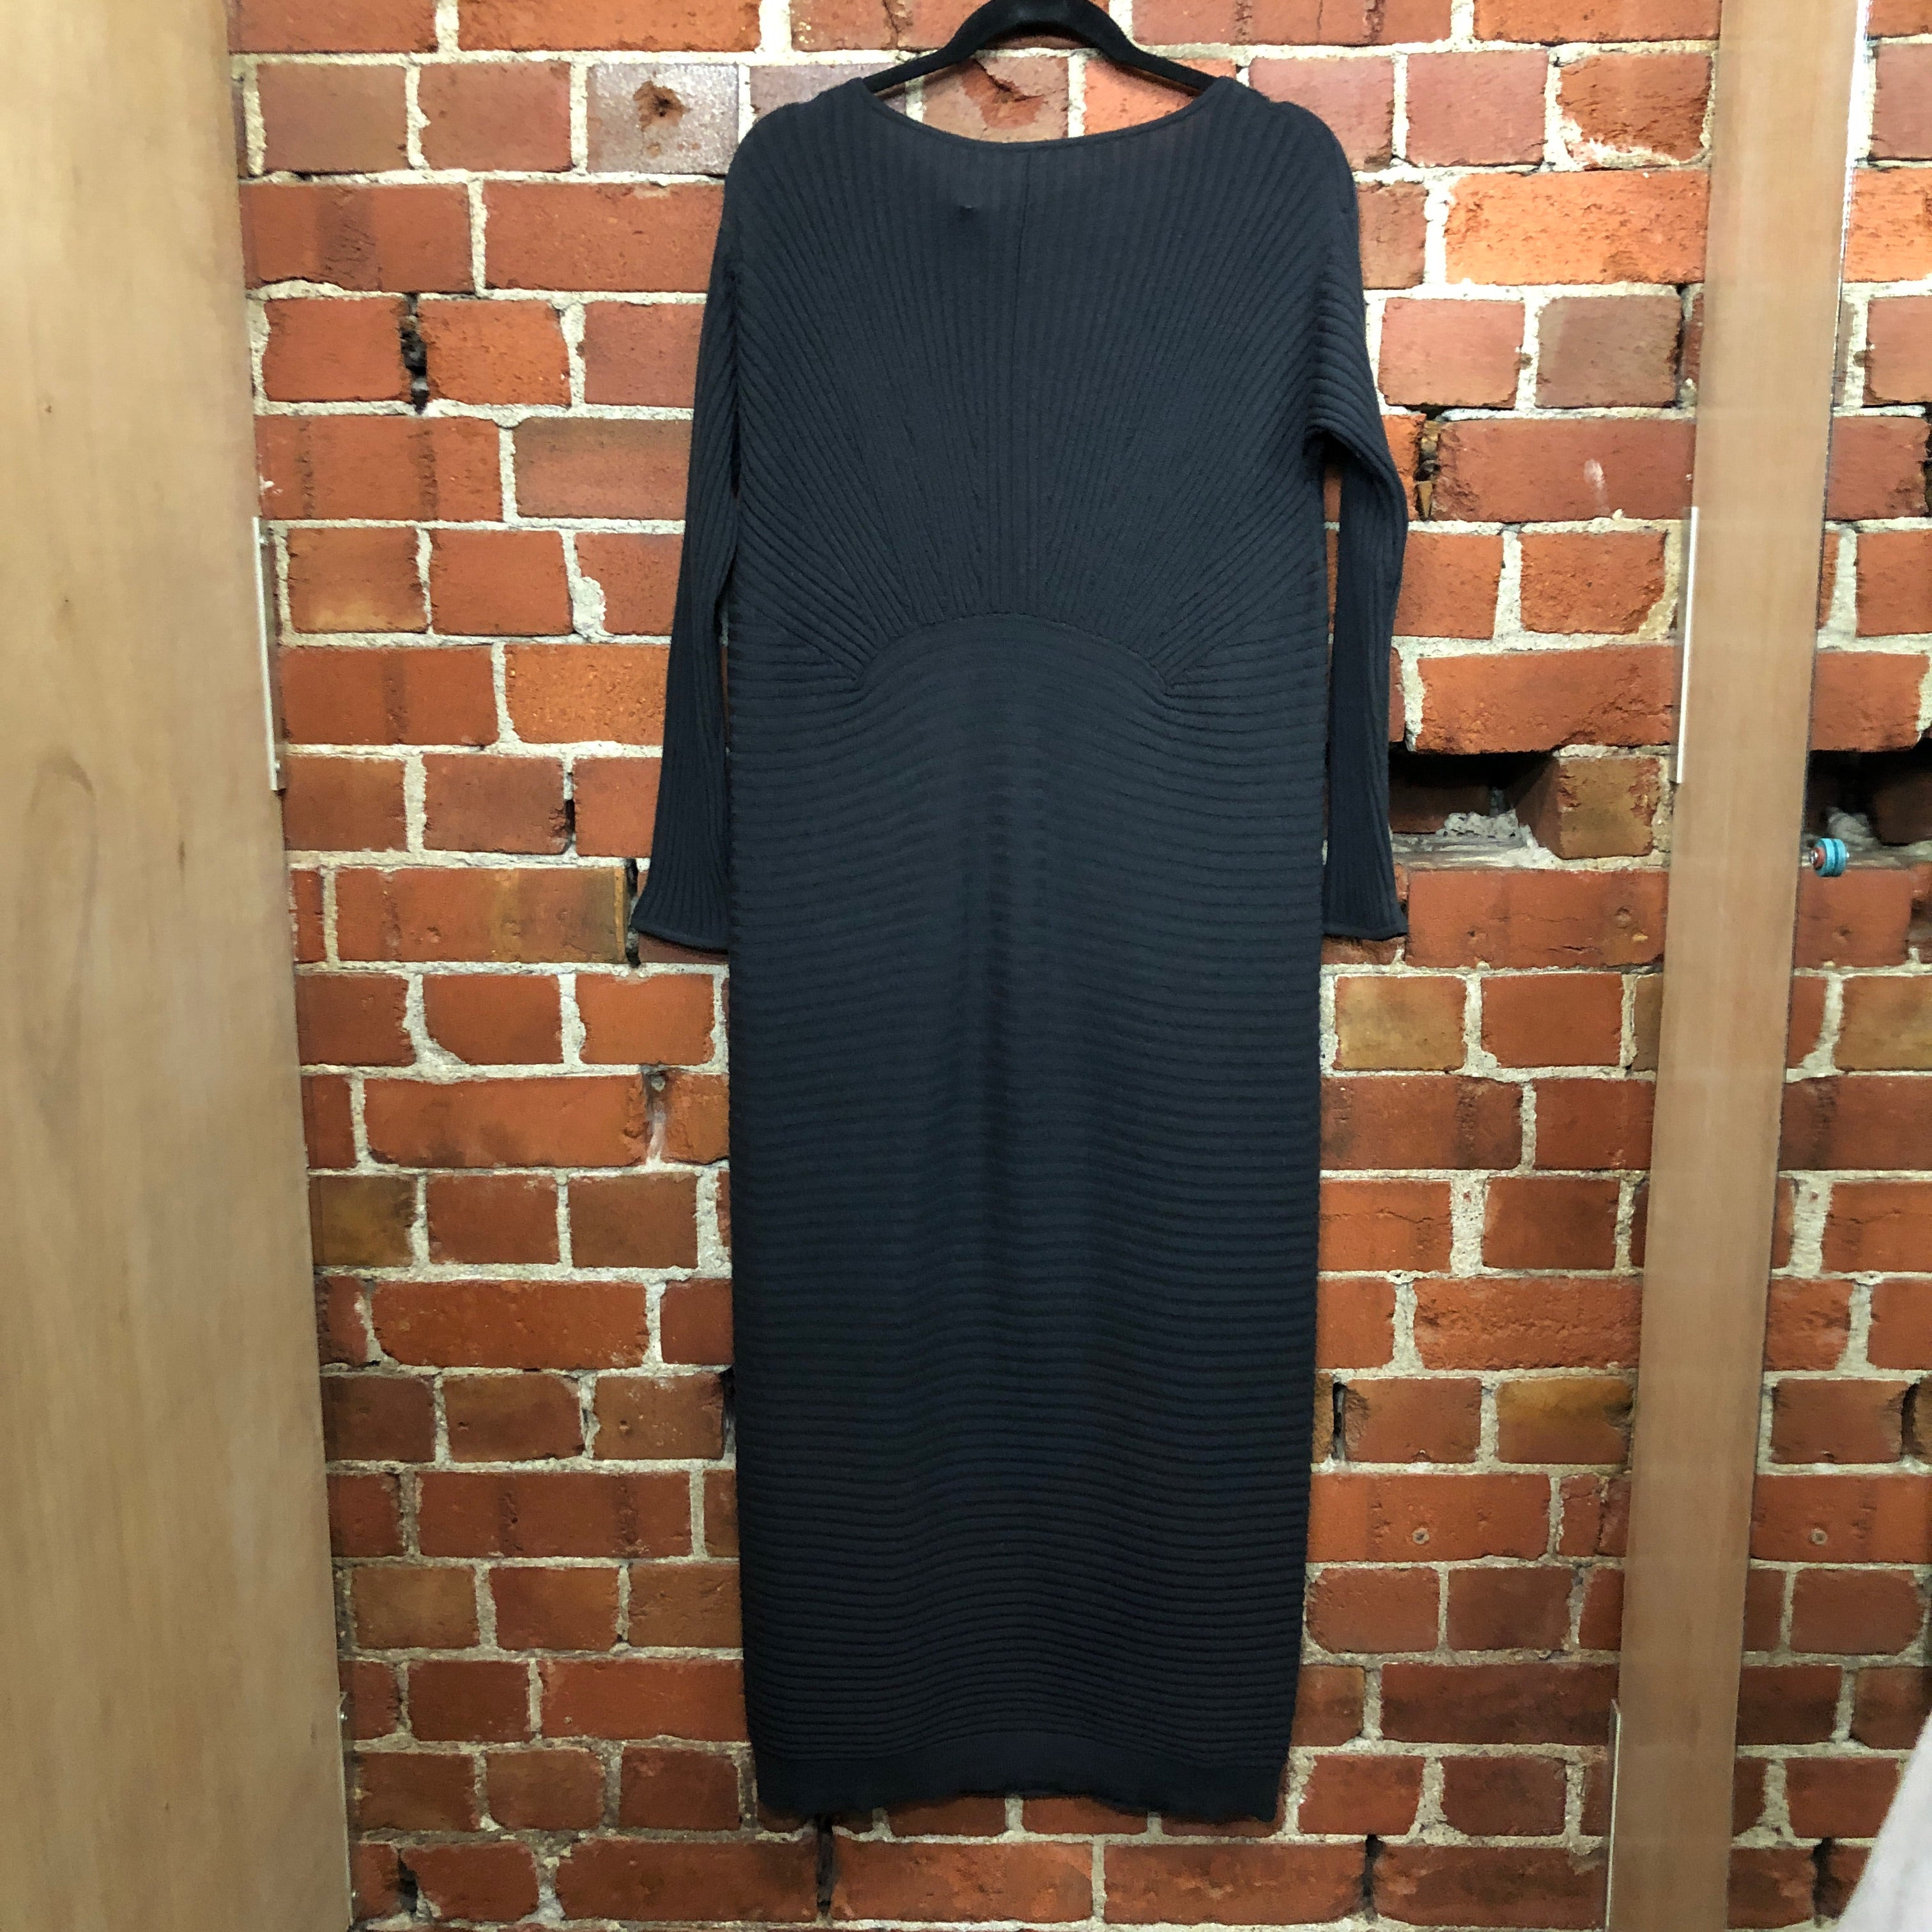 1946 NZ Made merino wool dress